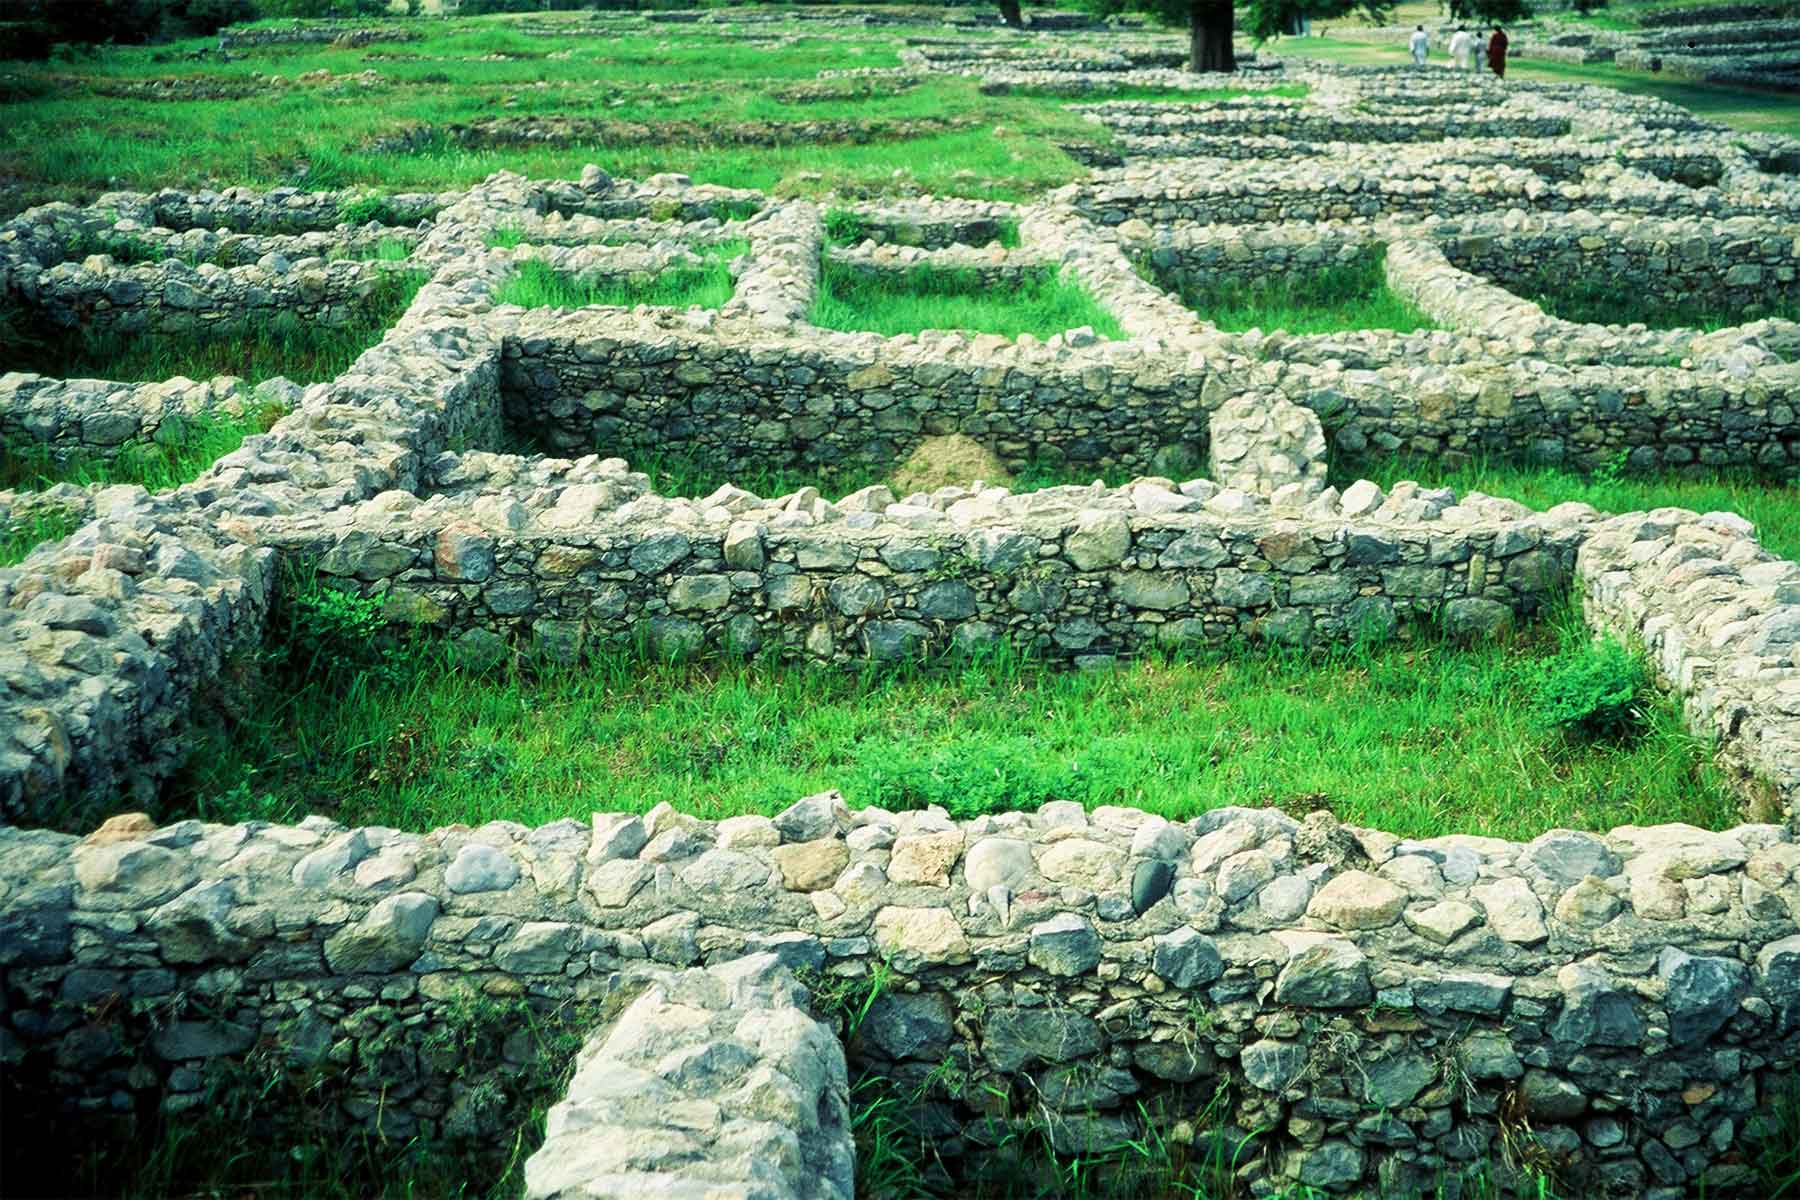 Sirkap archaeological site 2001 | Taxila  Punjab  Pakistan | Dr Steven Andrew Martin | Silk Road Photo Journal